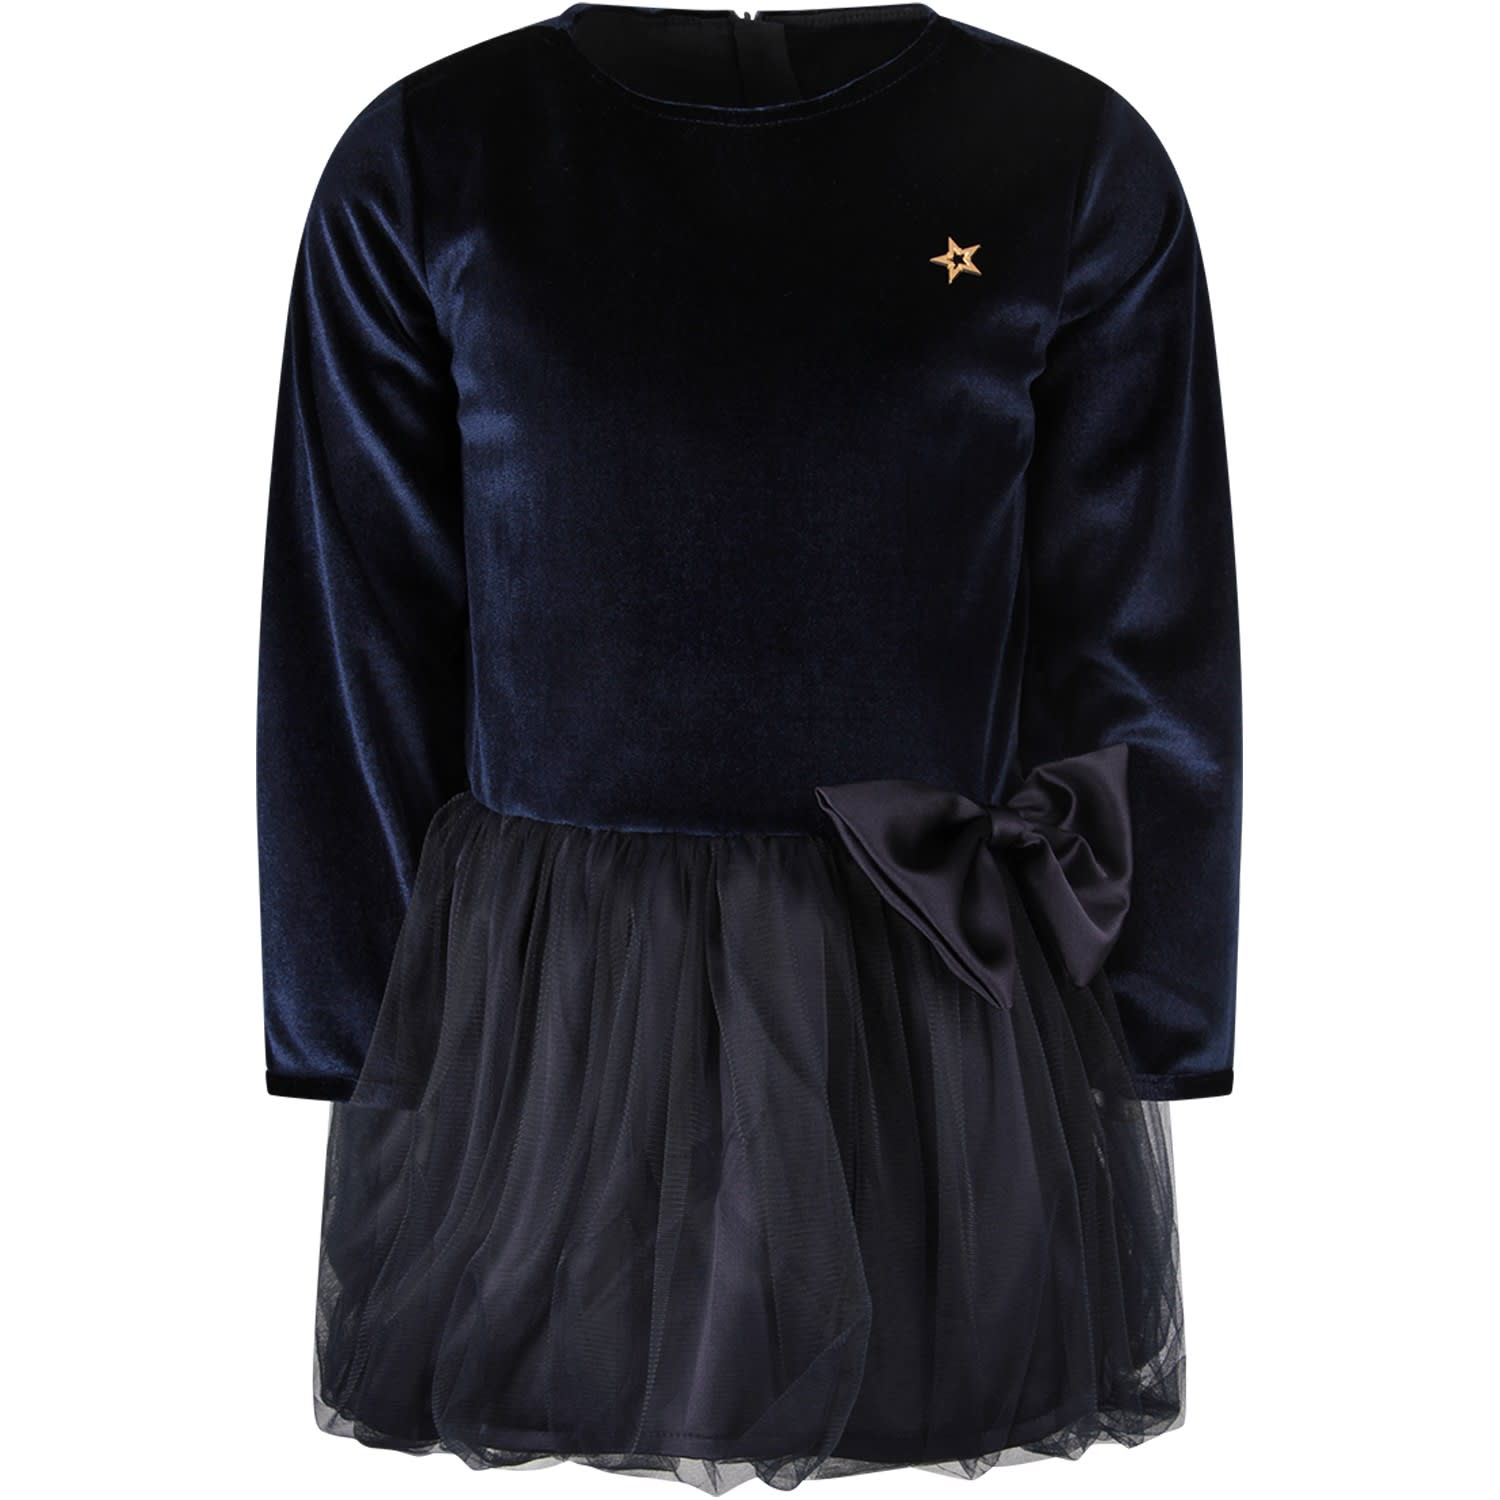 Blue Dress For Girl With Metallic Star And Bow